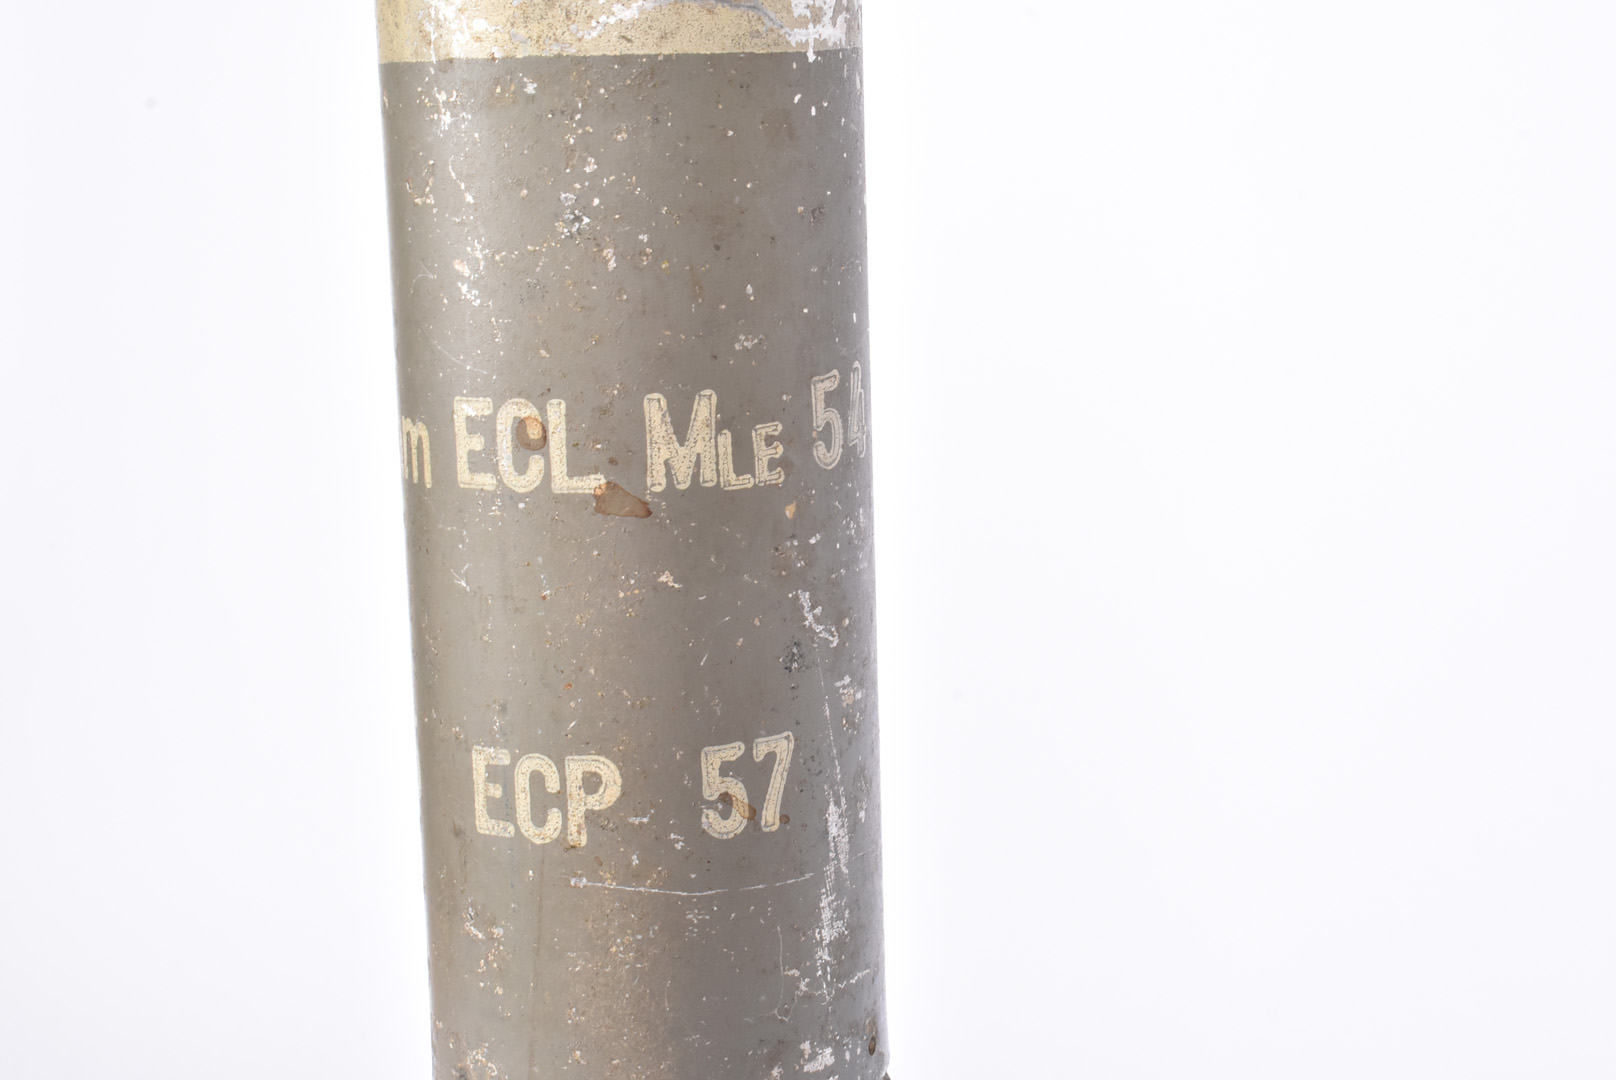 An inert 60mm ECL MLE 54 Mortar, possibly French, 36cm in length with stencilling to the middle, - Image 3 of 4